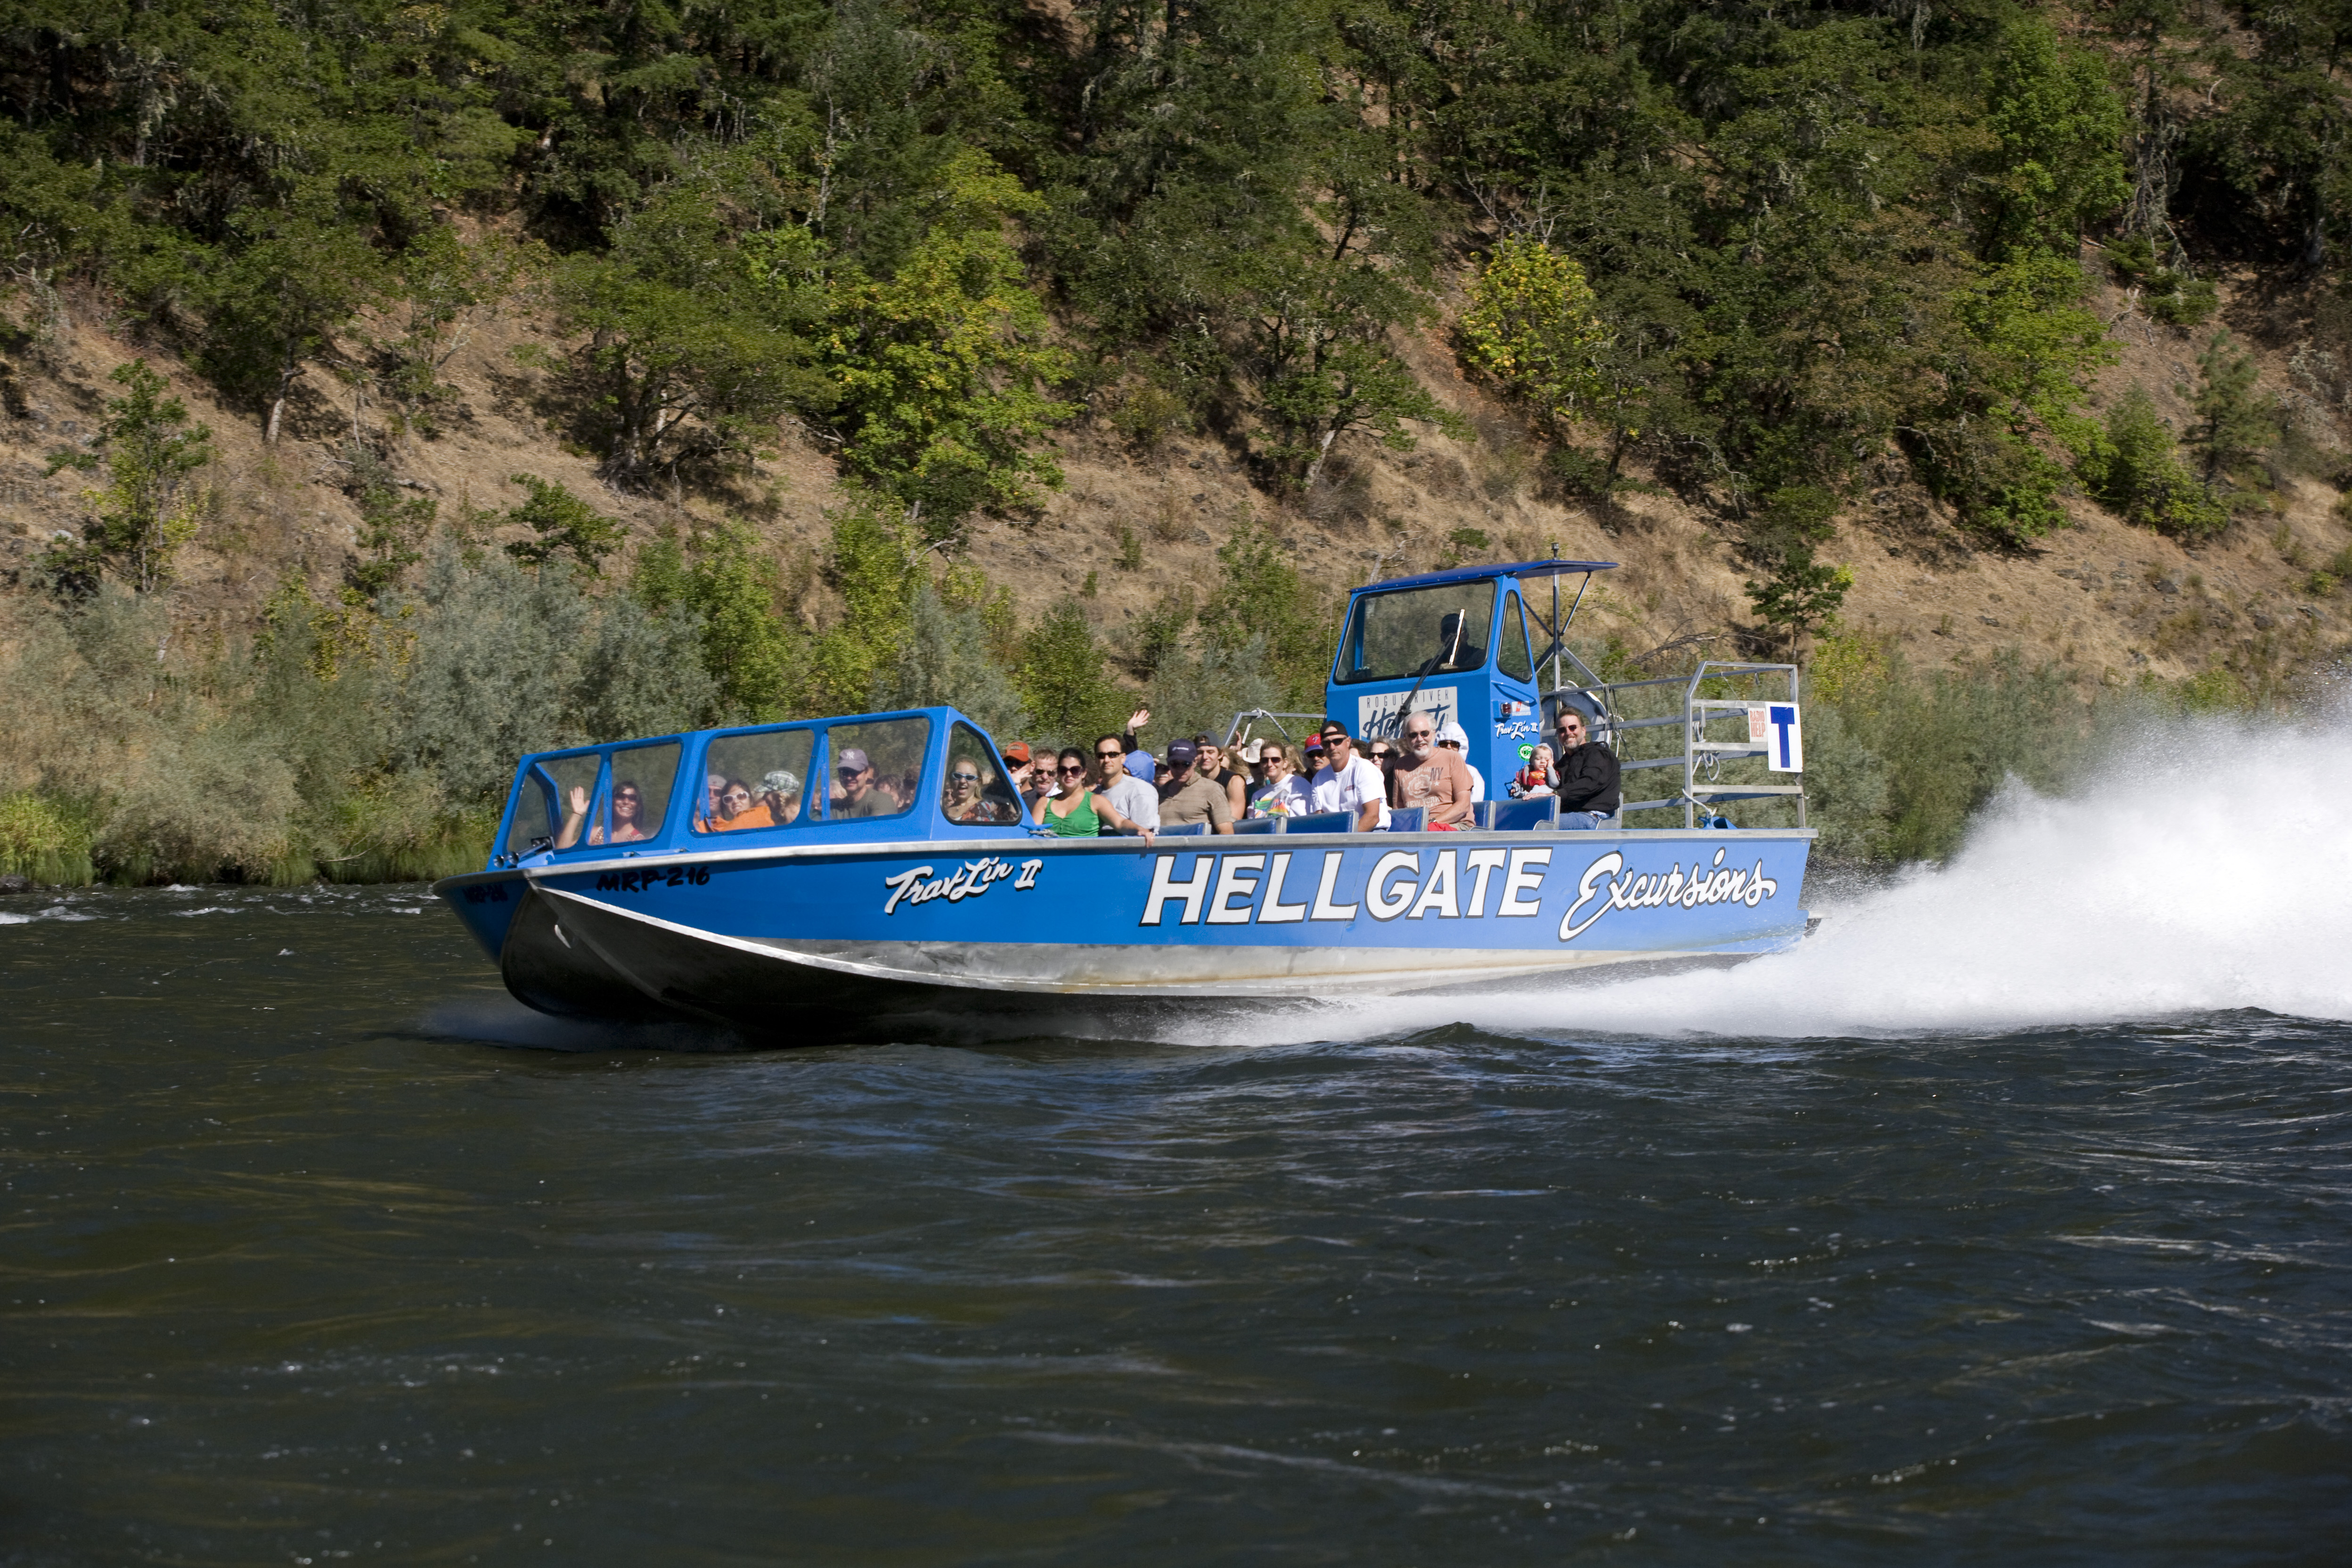 Hellgate Jet Boats Taprock Restaurant For Best River Town Project Grants P Directed